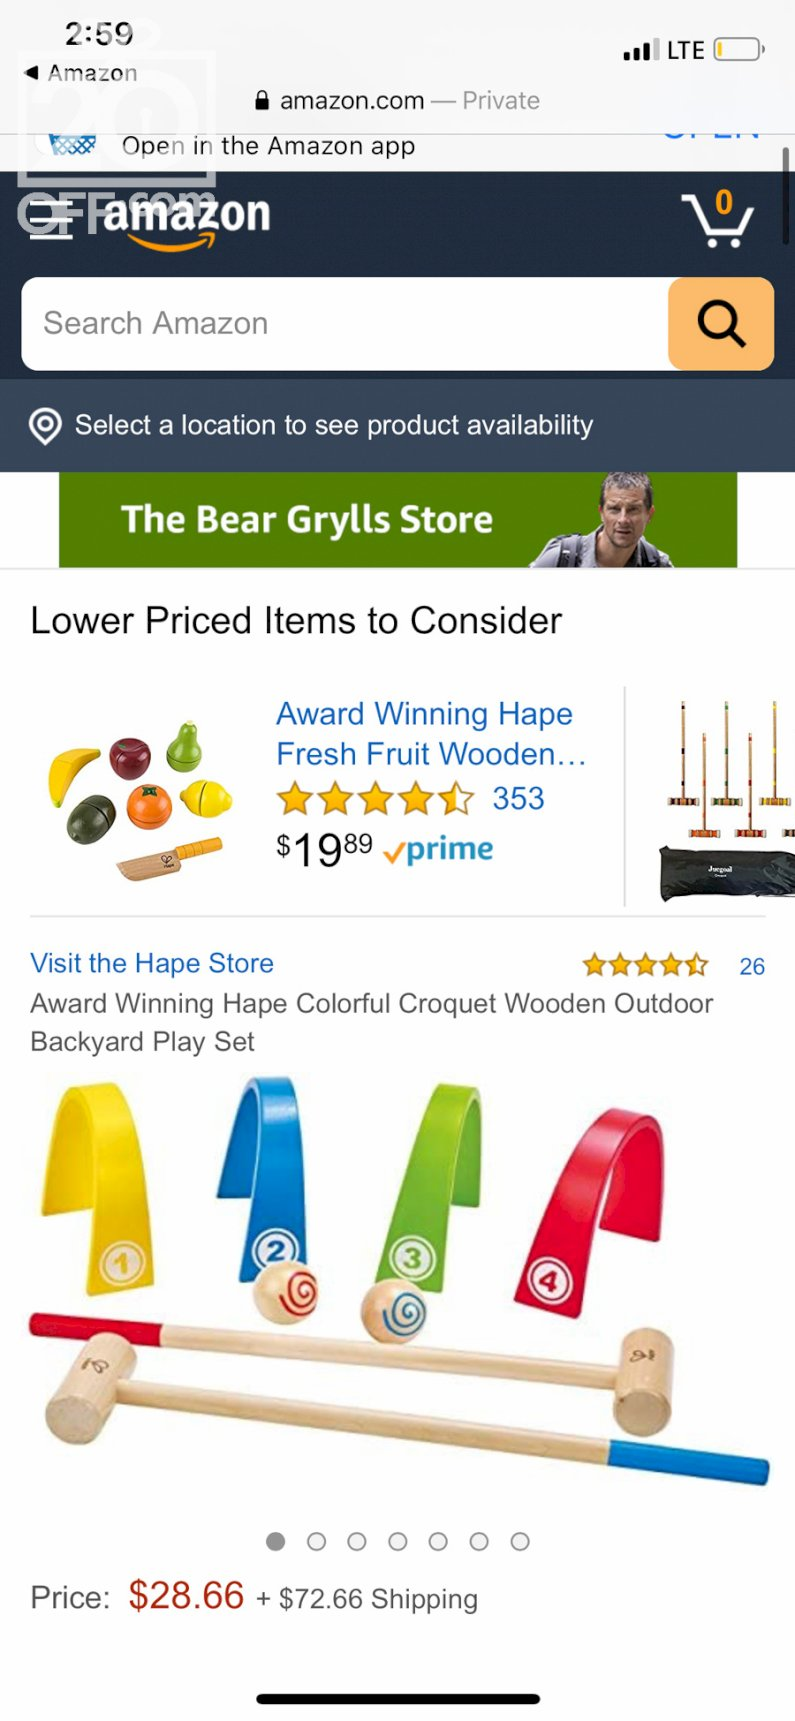 Wooden Color Croquet Amazon Deal